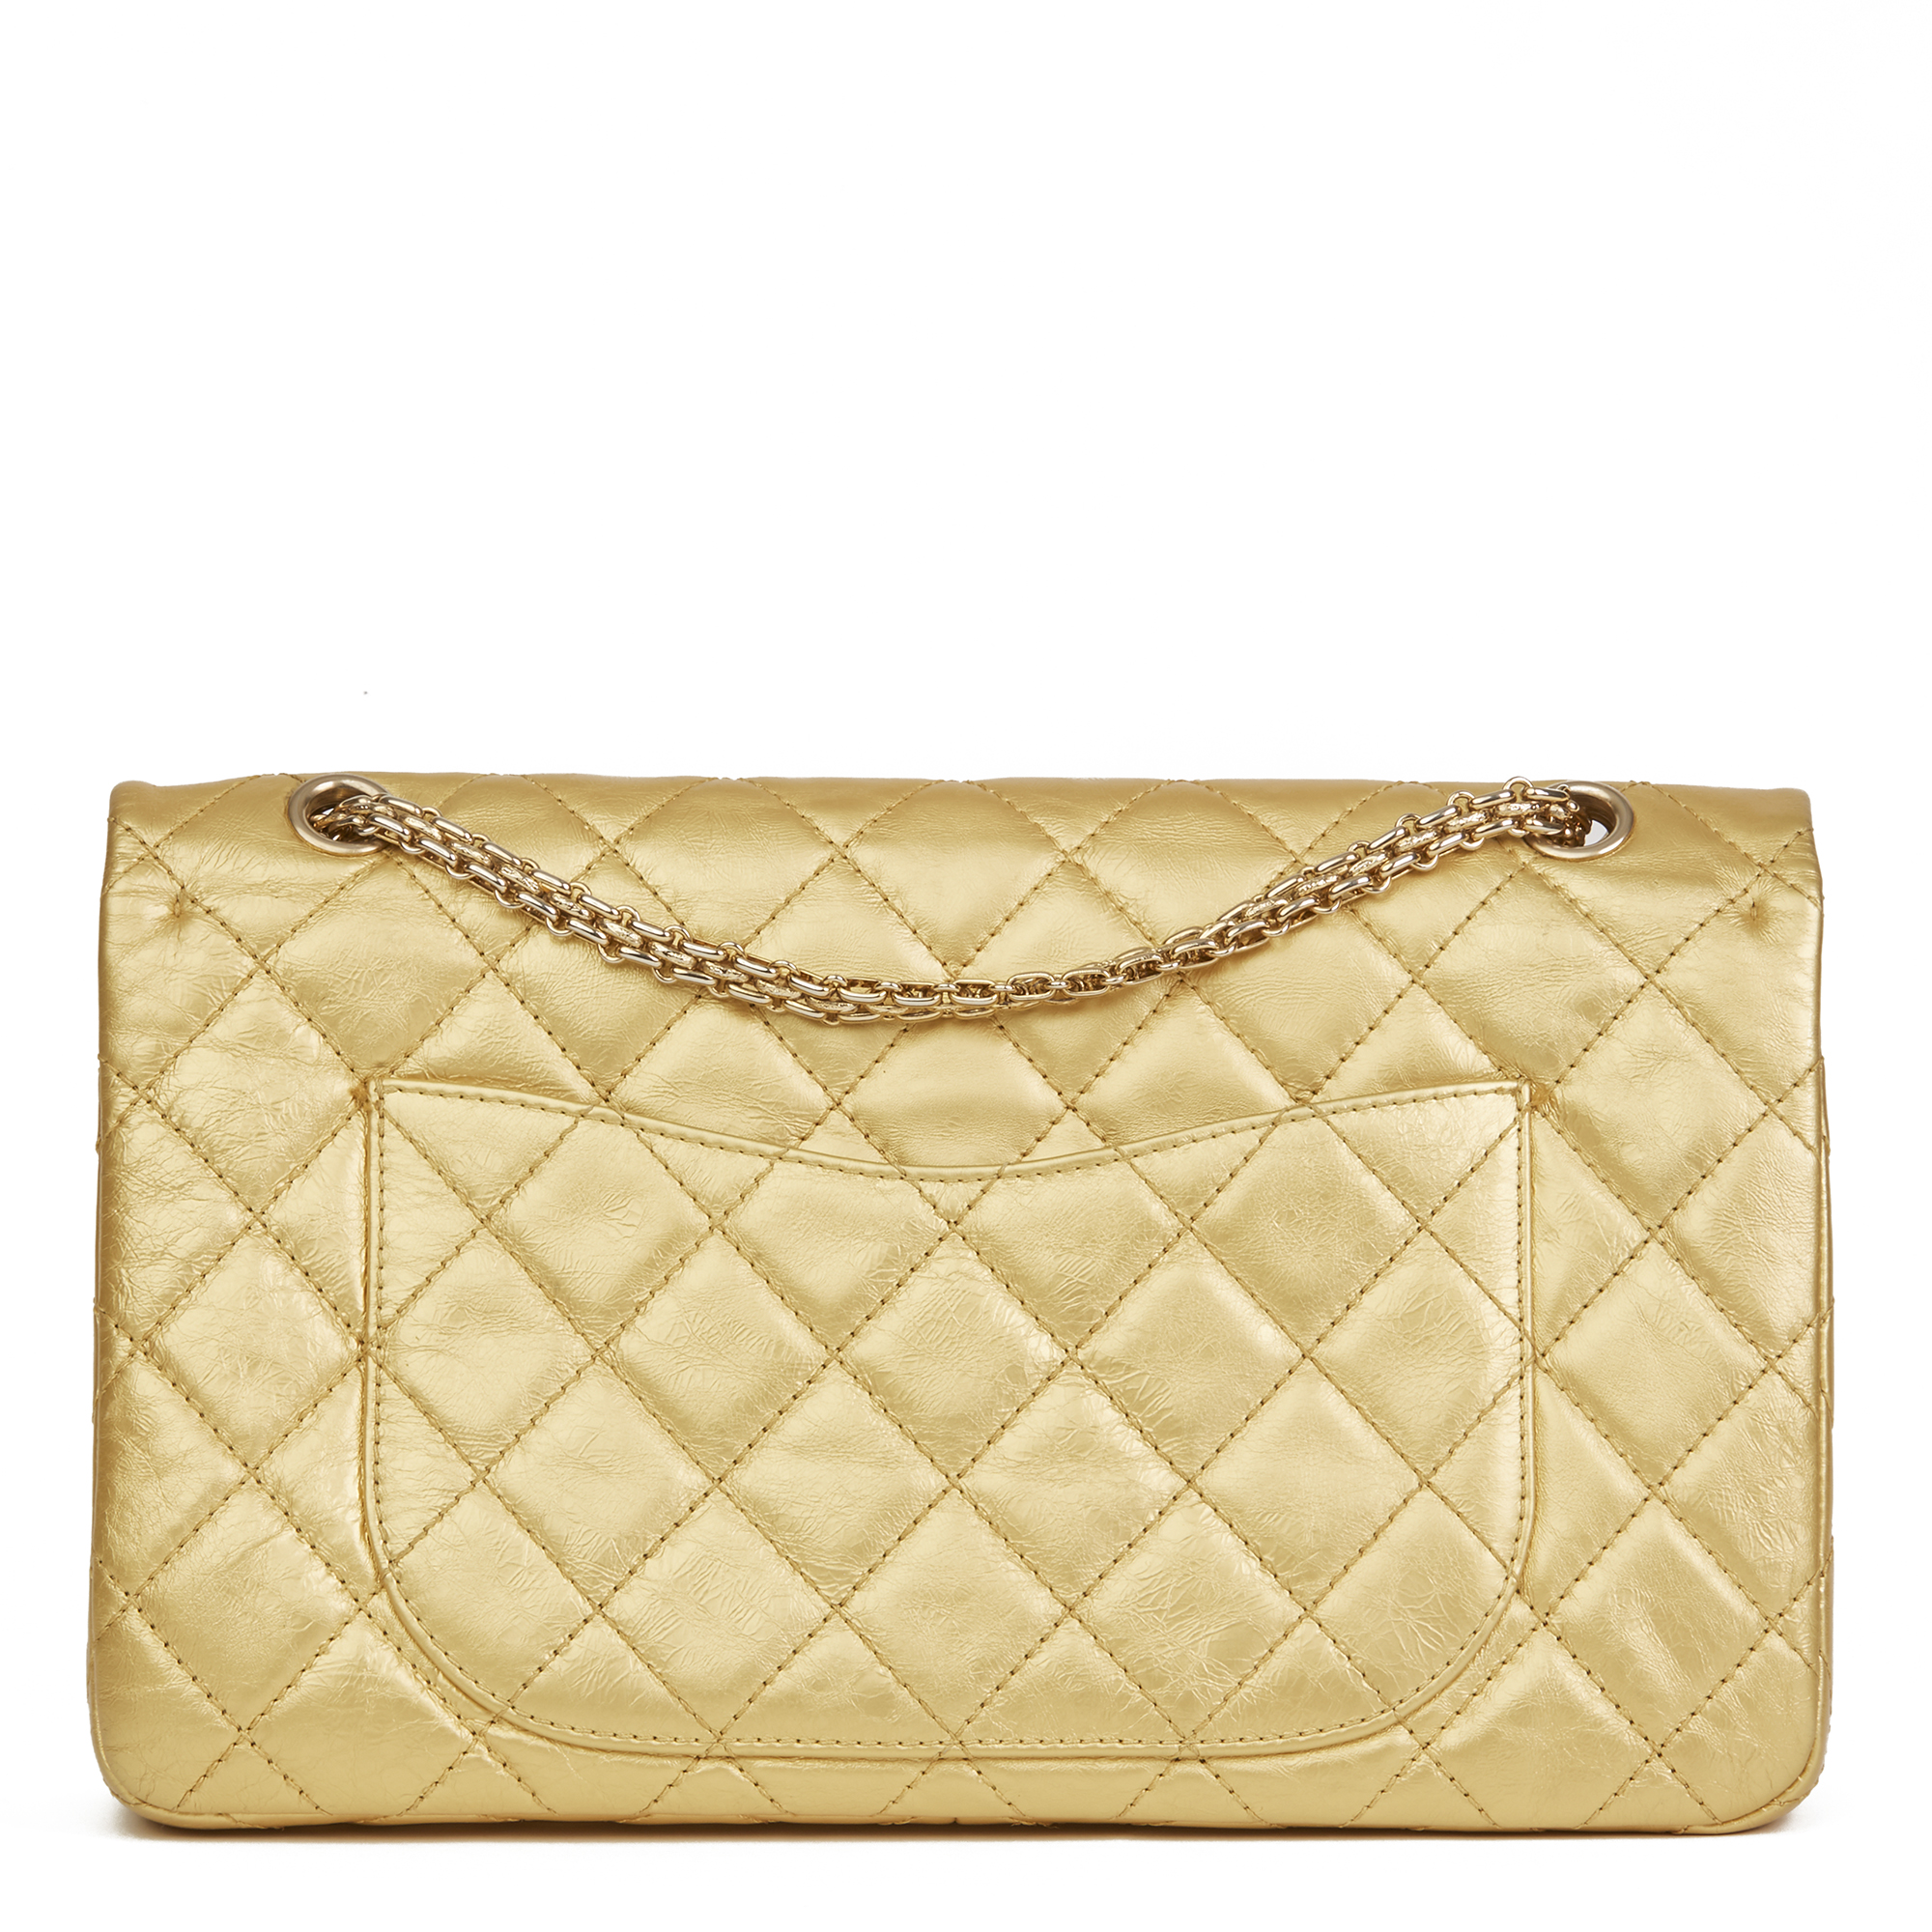 dd2241b07bb5 Details about CHANEL GOLD QUILTED AGED METALLIC CALFSKIN LEATHER 2.55  REISSUE 227 DOUBLE...